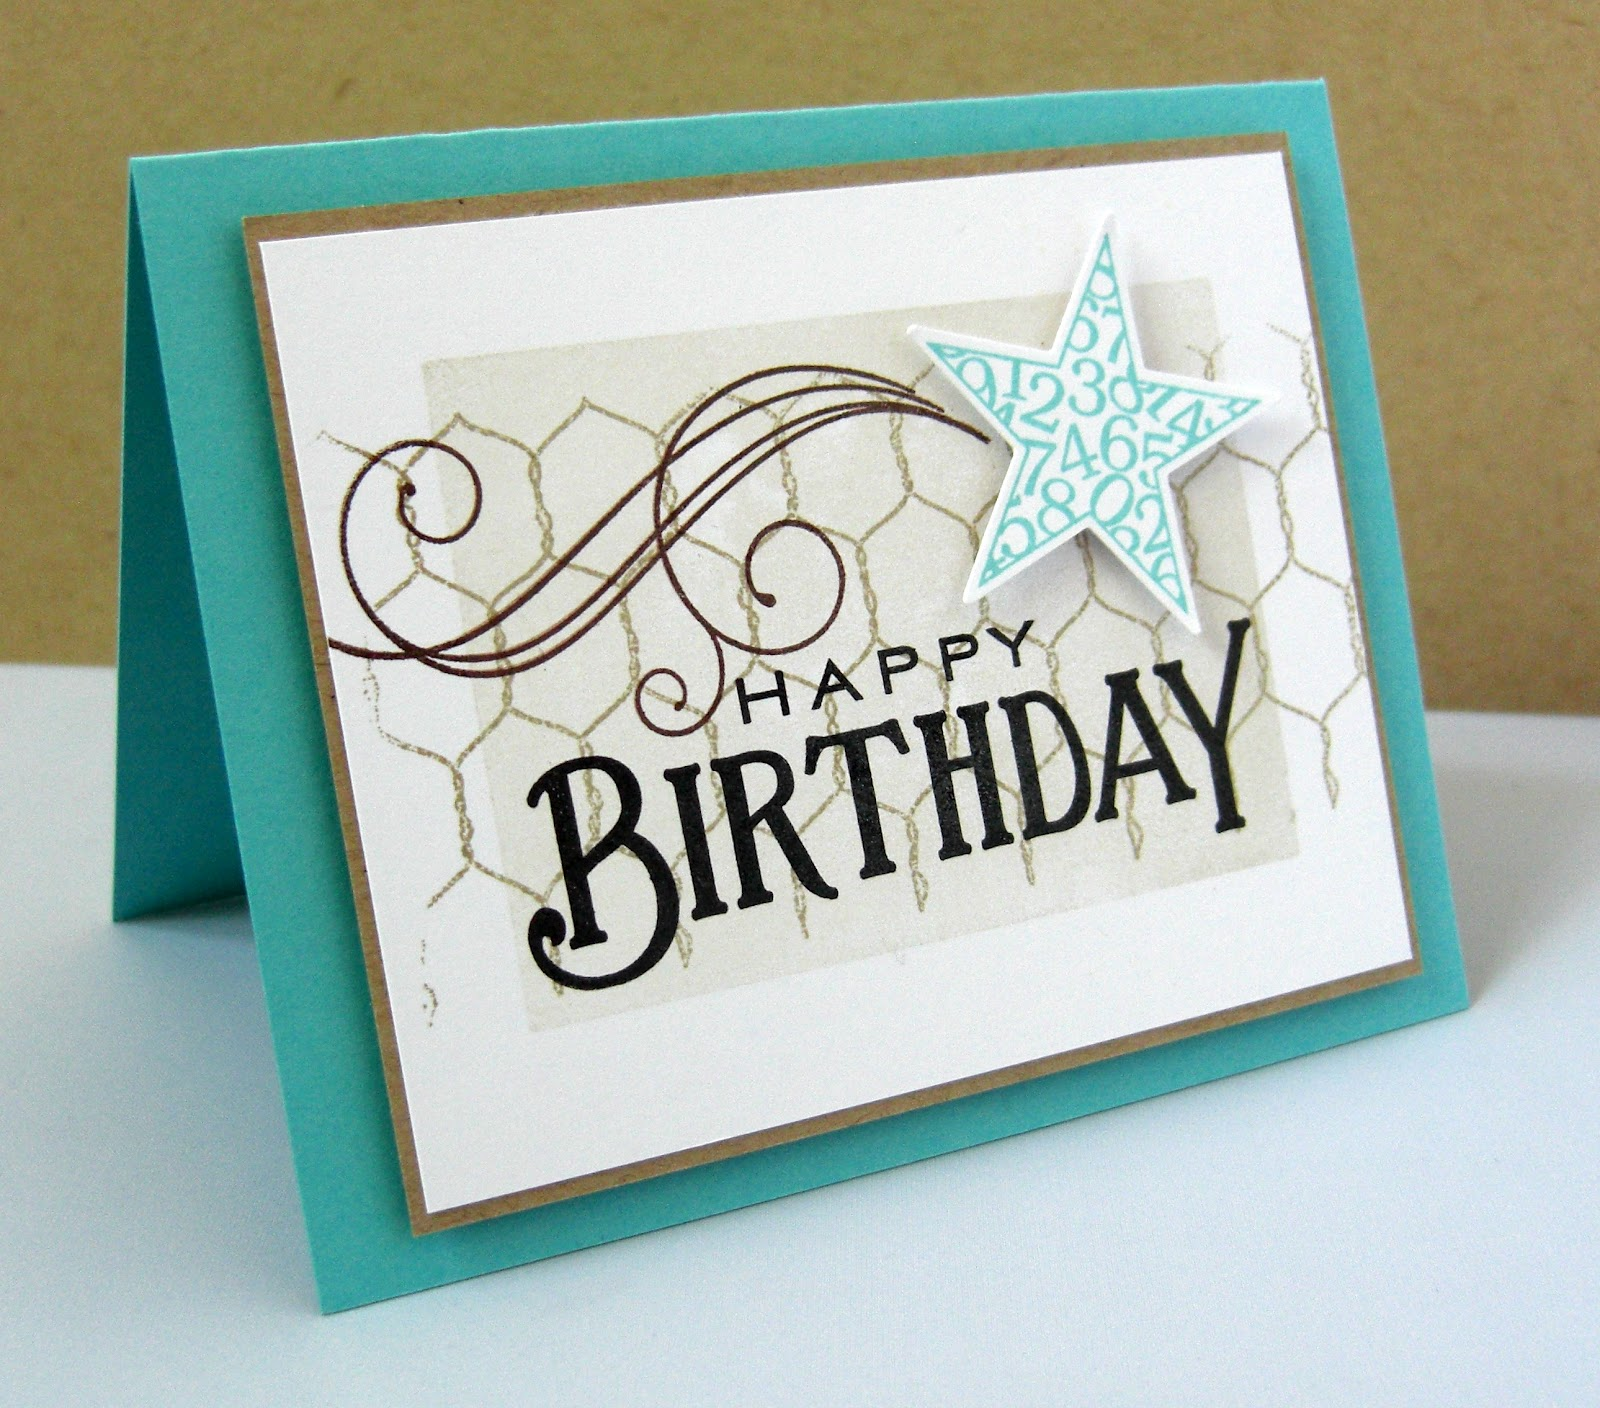 Birthday Cards For Men ~ Stamping sharing march